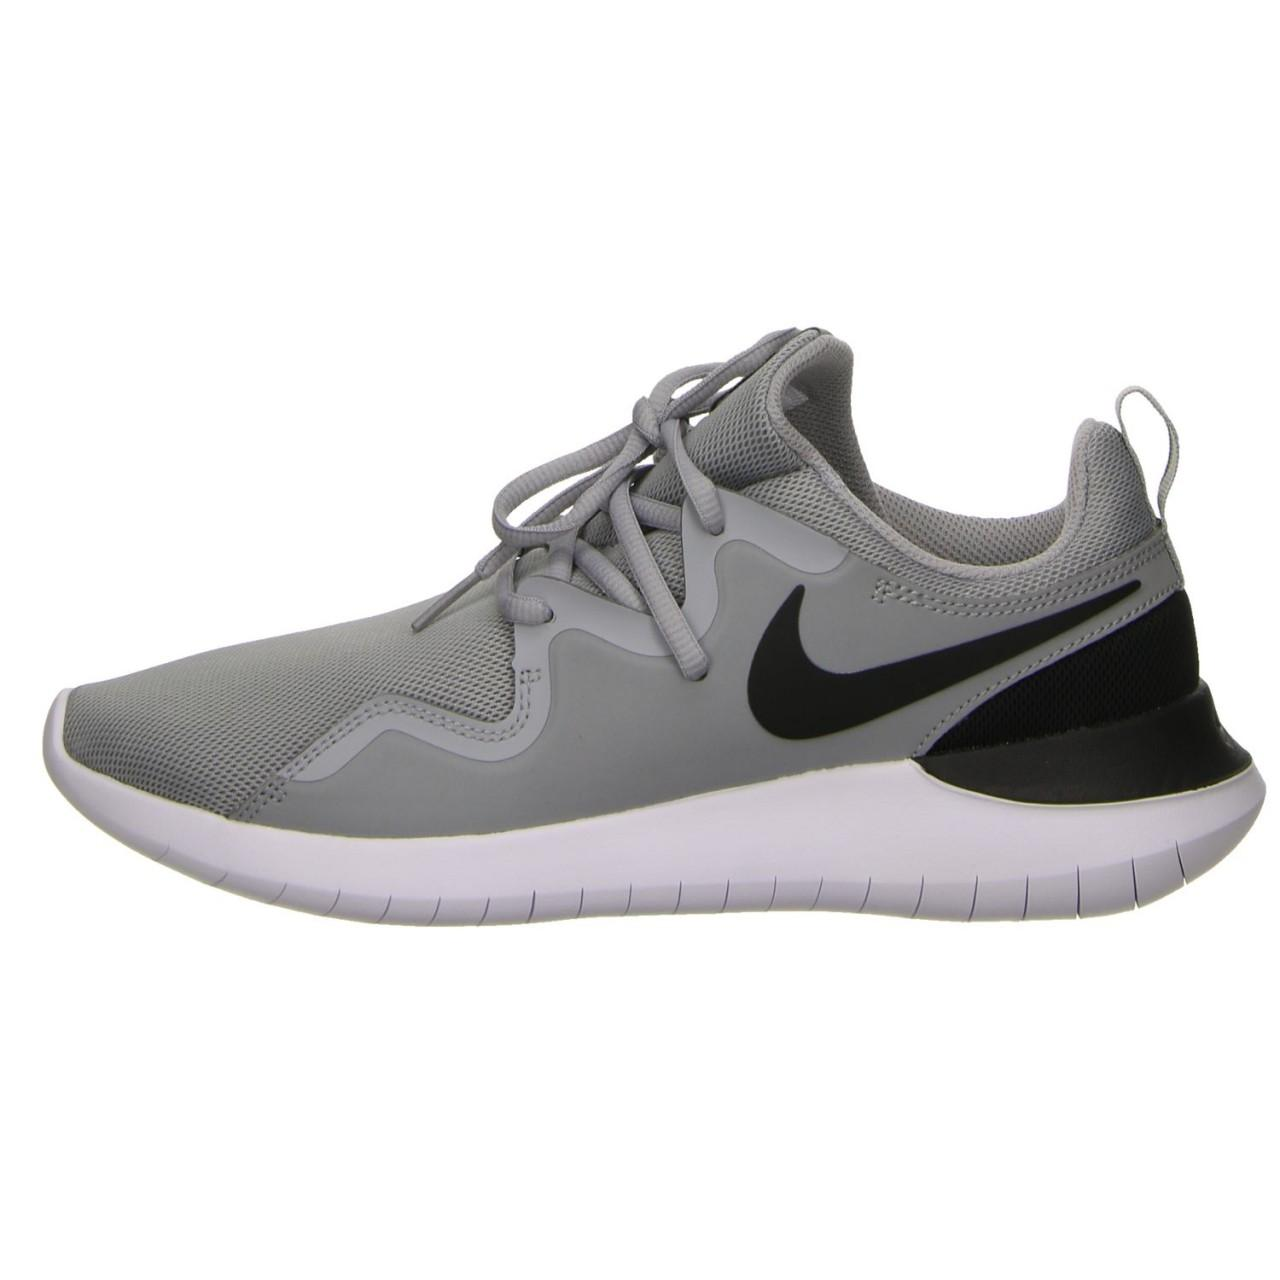 16036be6927f5 Nike Trainers Grey Tessen in Gray for Men - Lyst